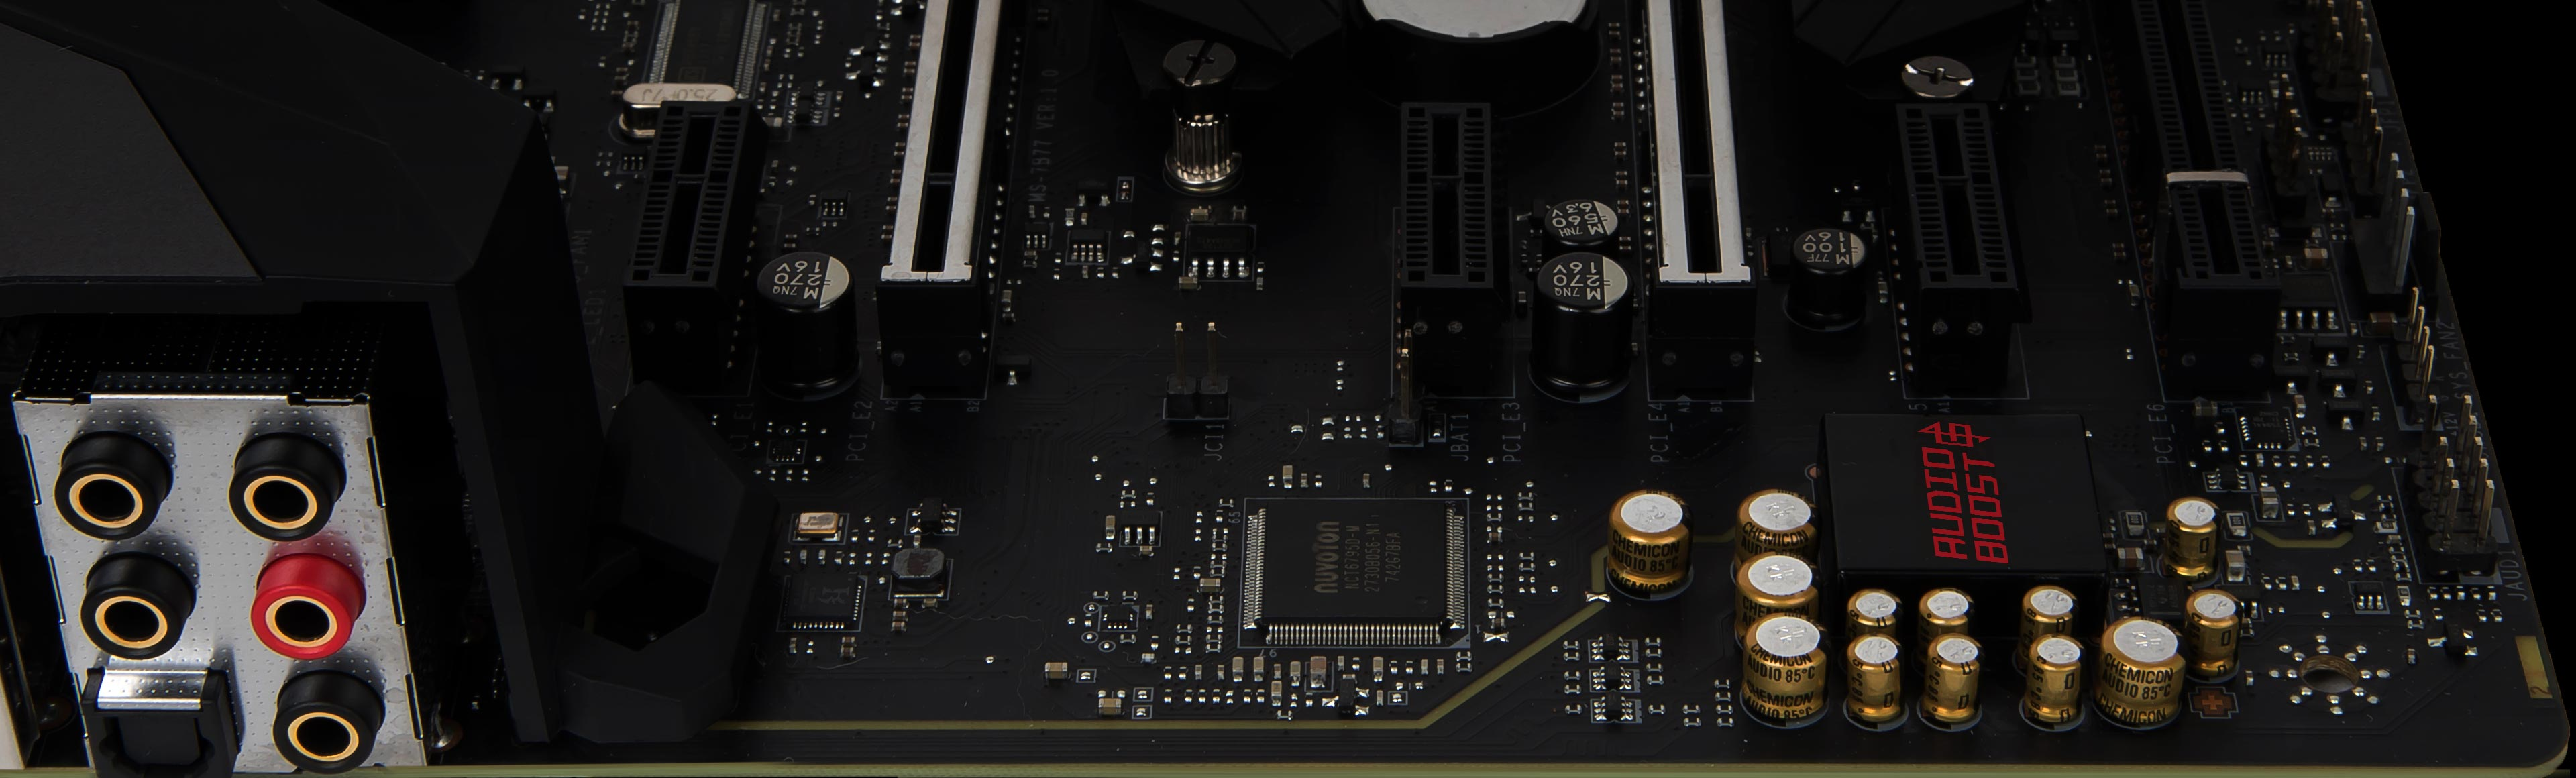 X470 Gaming M7 Ac Motherboard The World Leader In Electronics Manufacturerelectro Plate Circuitry Dragon Circuits Audio